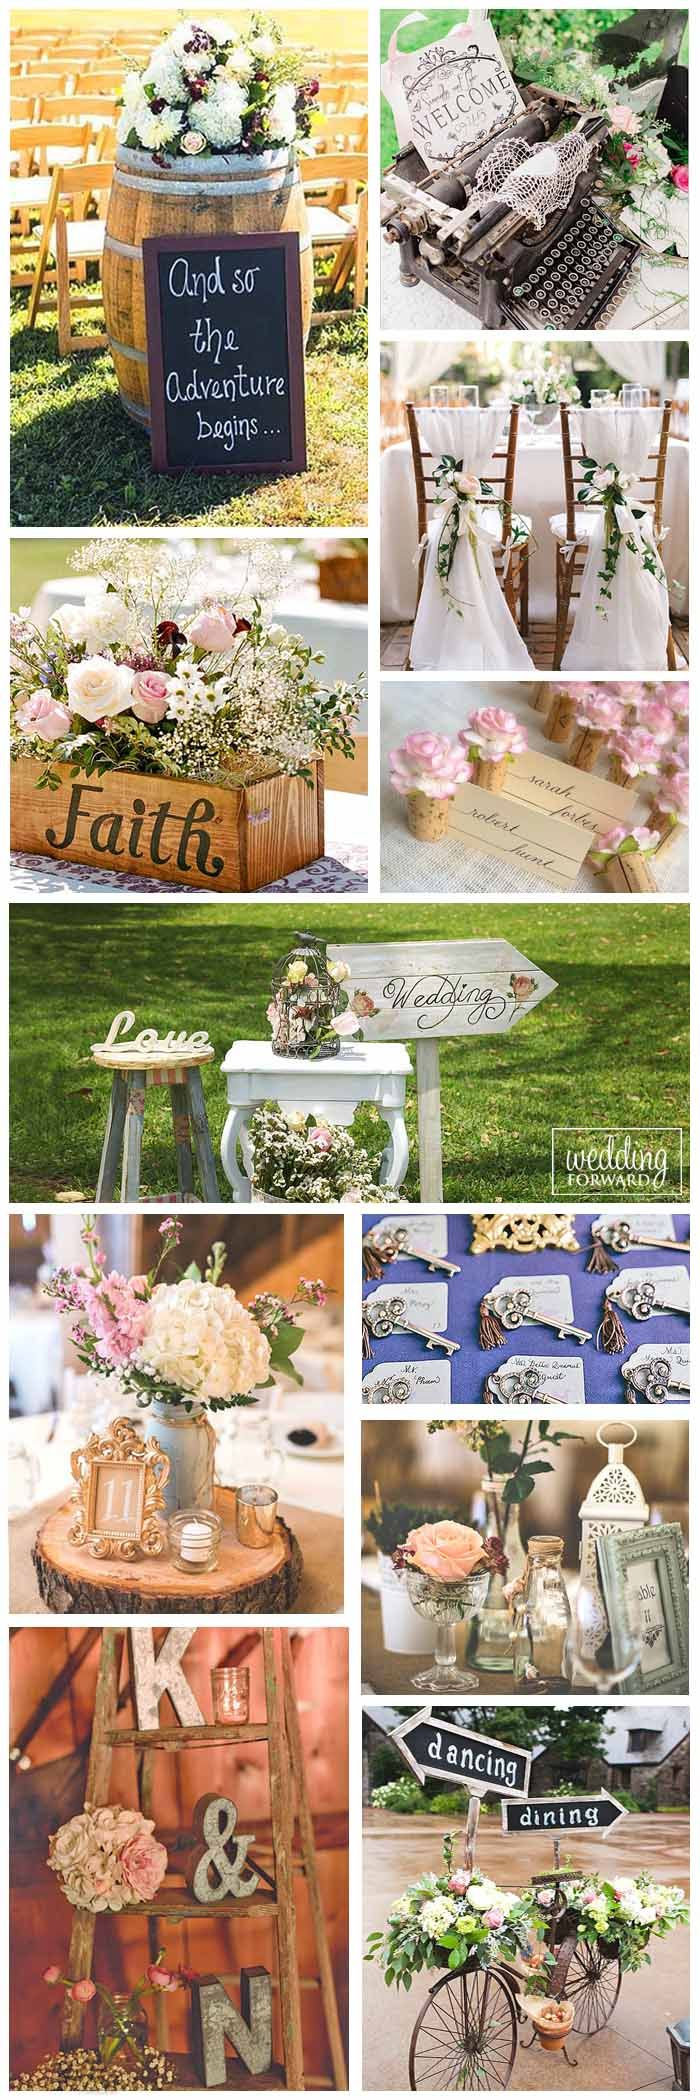 Shabby & Chic Vintage Wedding Decor Ideas ❤ Shabby & chic vintage weddings always look great. Get inspired for decorating centerpieces, chairs, place settings, wedding card boxes, vases and mason jars. See more: http://www.weddingforward.com/shabby-chic-vintage-wedding-decor-ideas/ #weddings #decorations #vintage